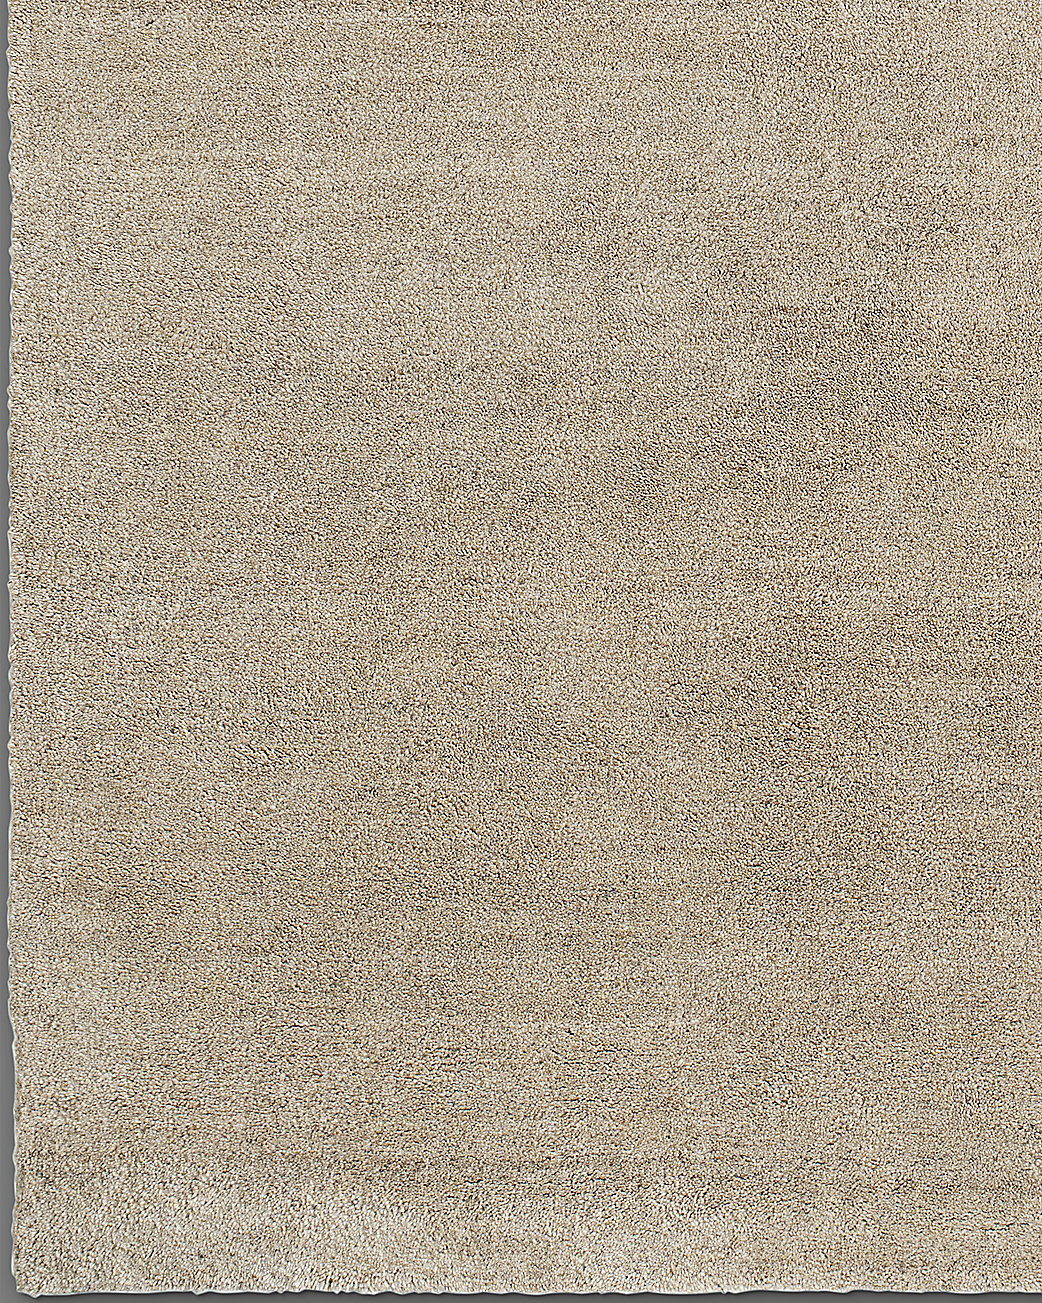 Luxe Heathered Wool Rug - Camel